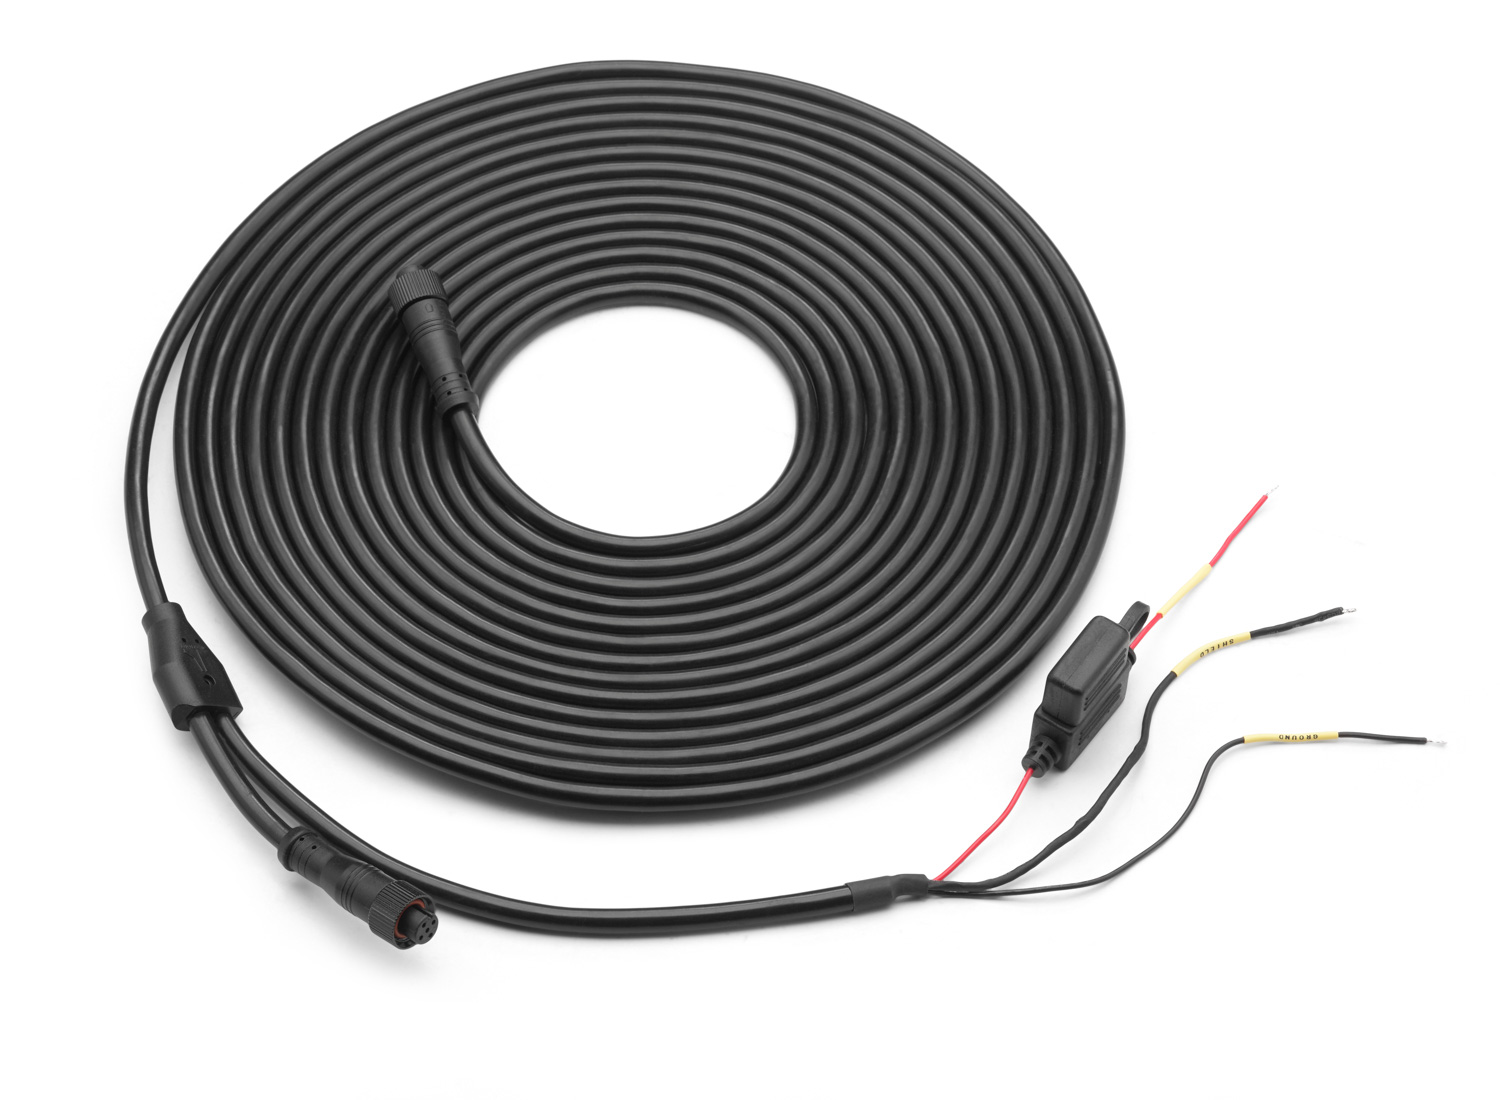 mmc pn2k 25 powered network cable for connection of compatible nmea 2000 mediamaster source units 25 ft 7 62 m  [ 1500 x 1100 Pixel ]